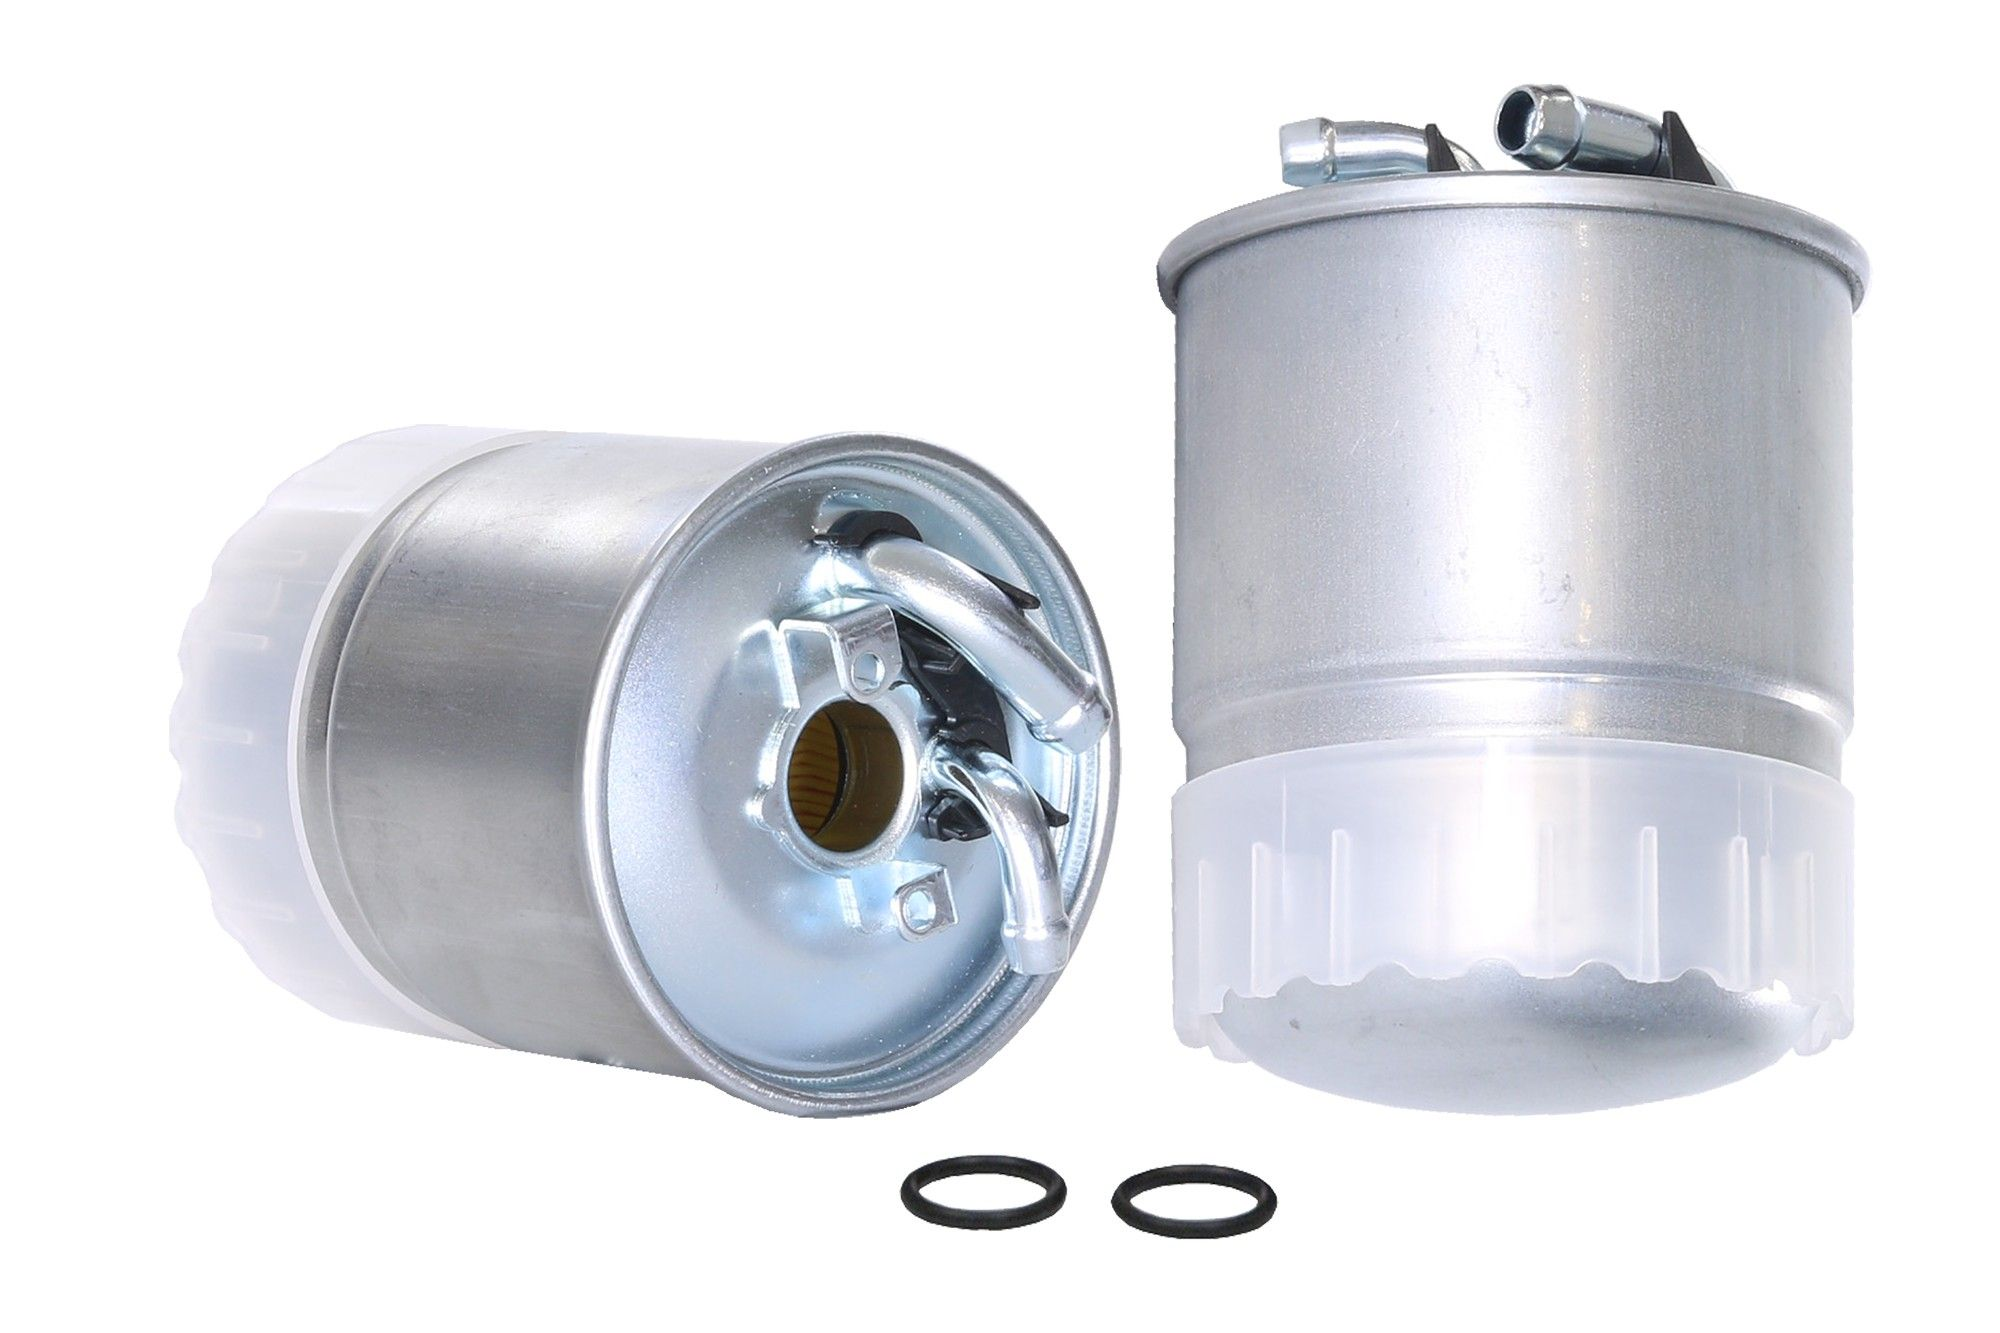 Jeep Grand Cherokee Fuel Filter Replacement Fram Hastings Mopar 2001 2007 6 Cyl 30l Wix 33934